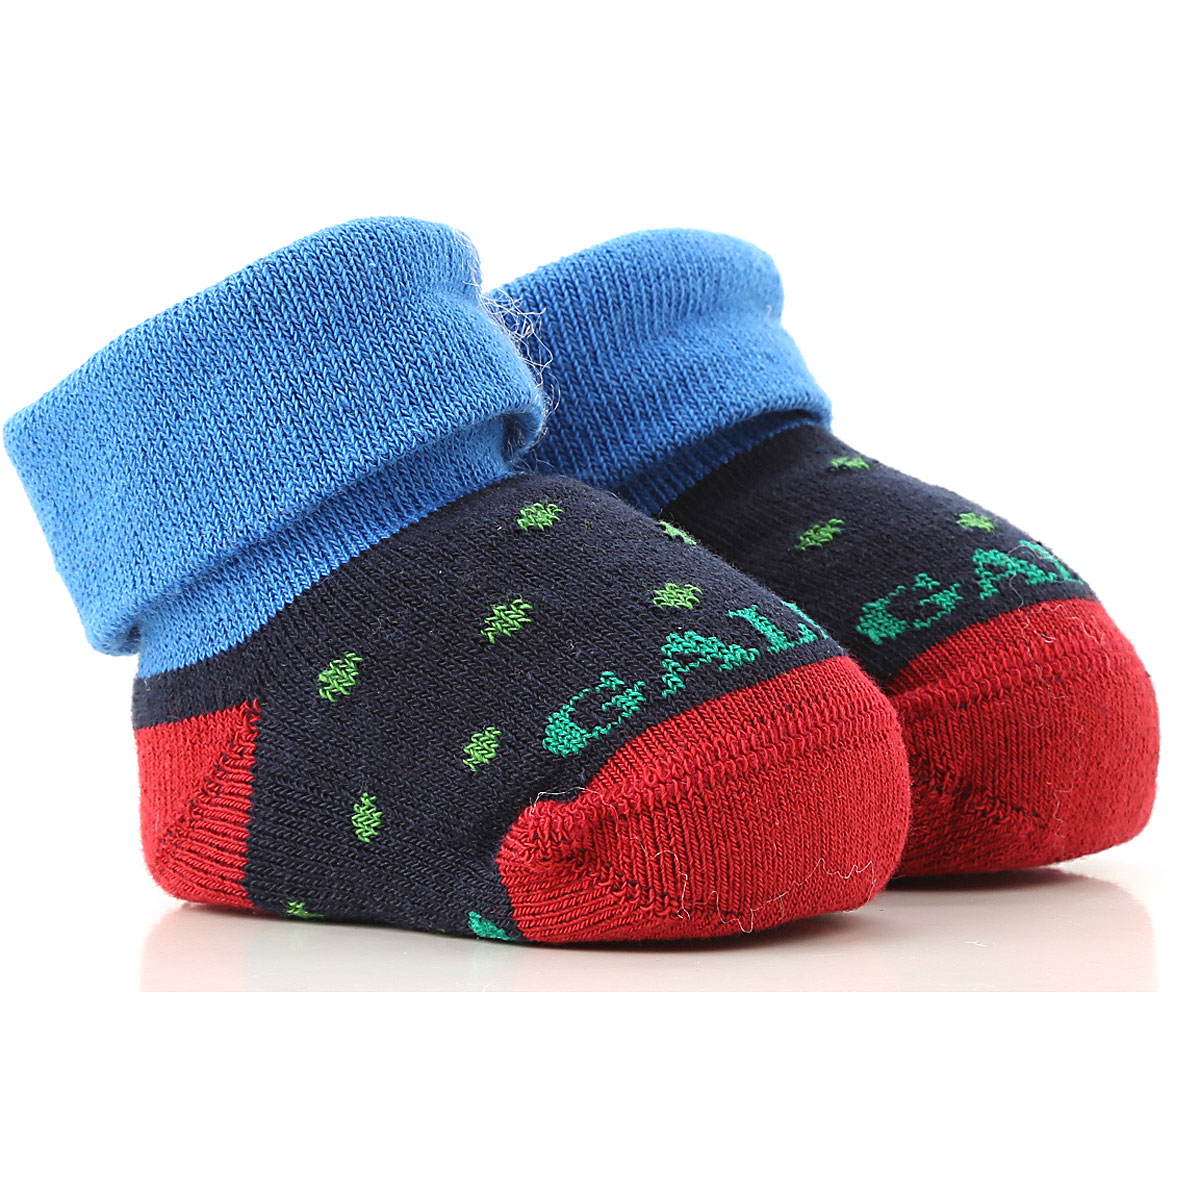 Gallo Baby Shoes for Boys On Sale in Outlet, navy, Cotton, 2019